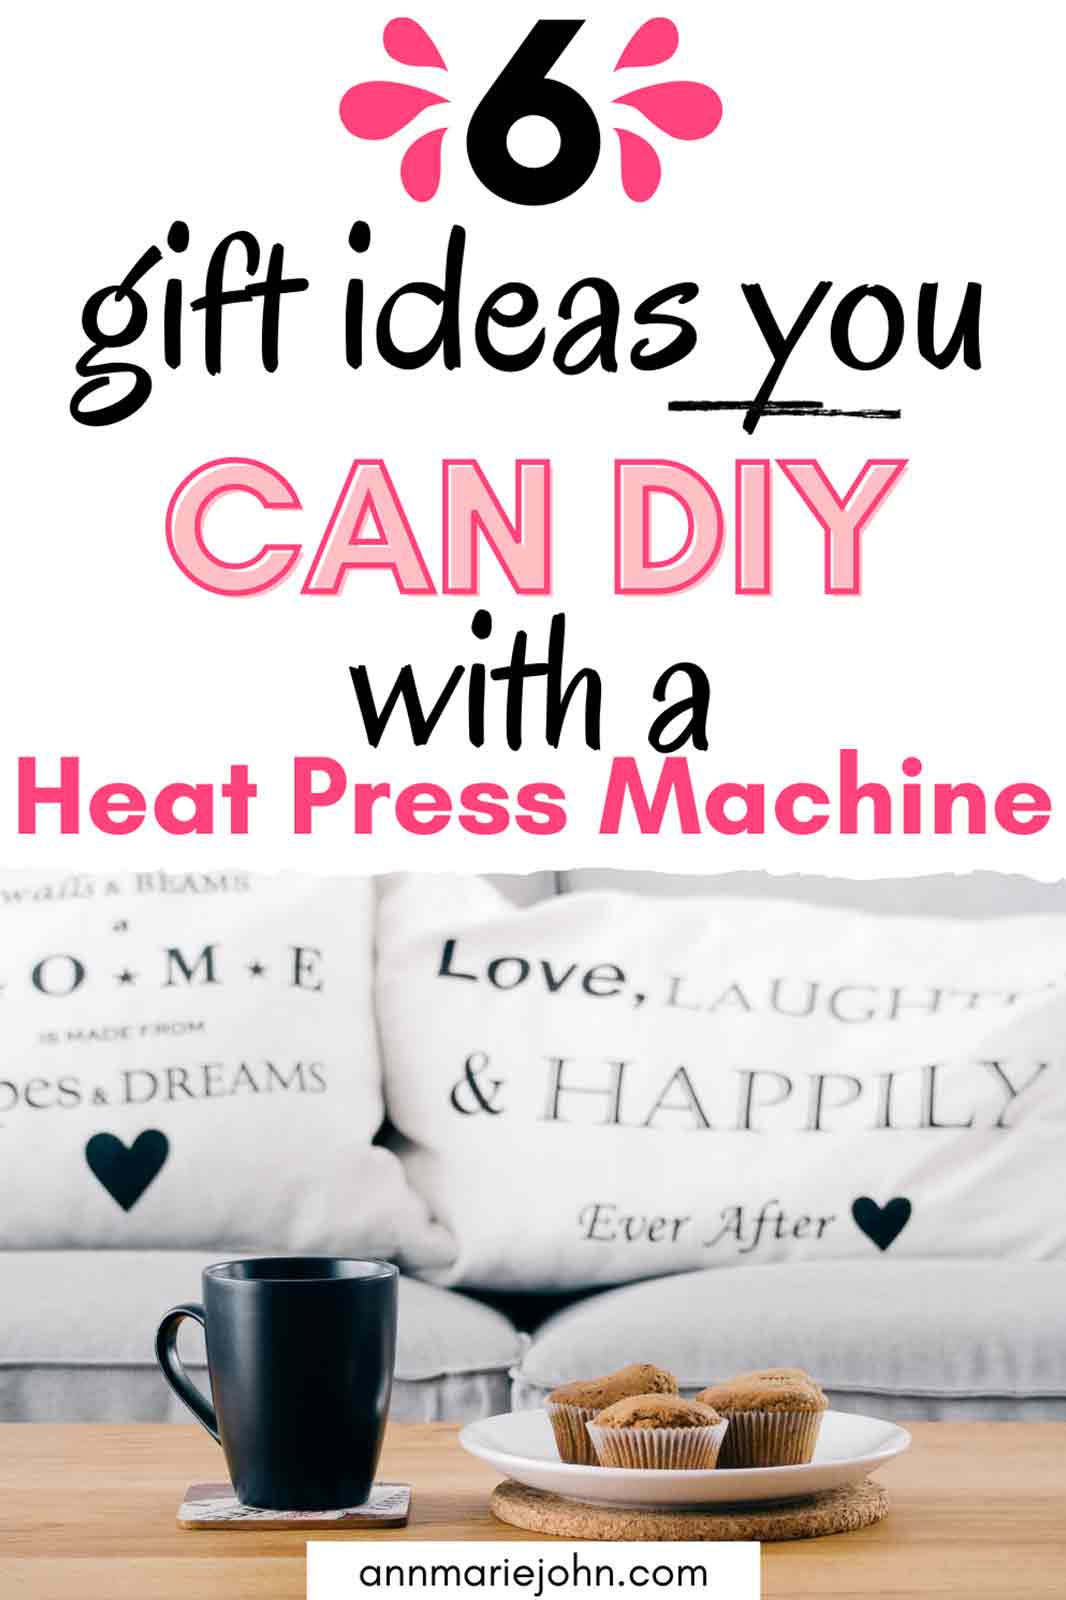 Gift Ideas You Can DIY With a Heat Press Machine